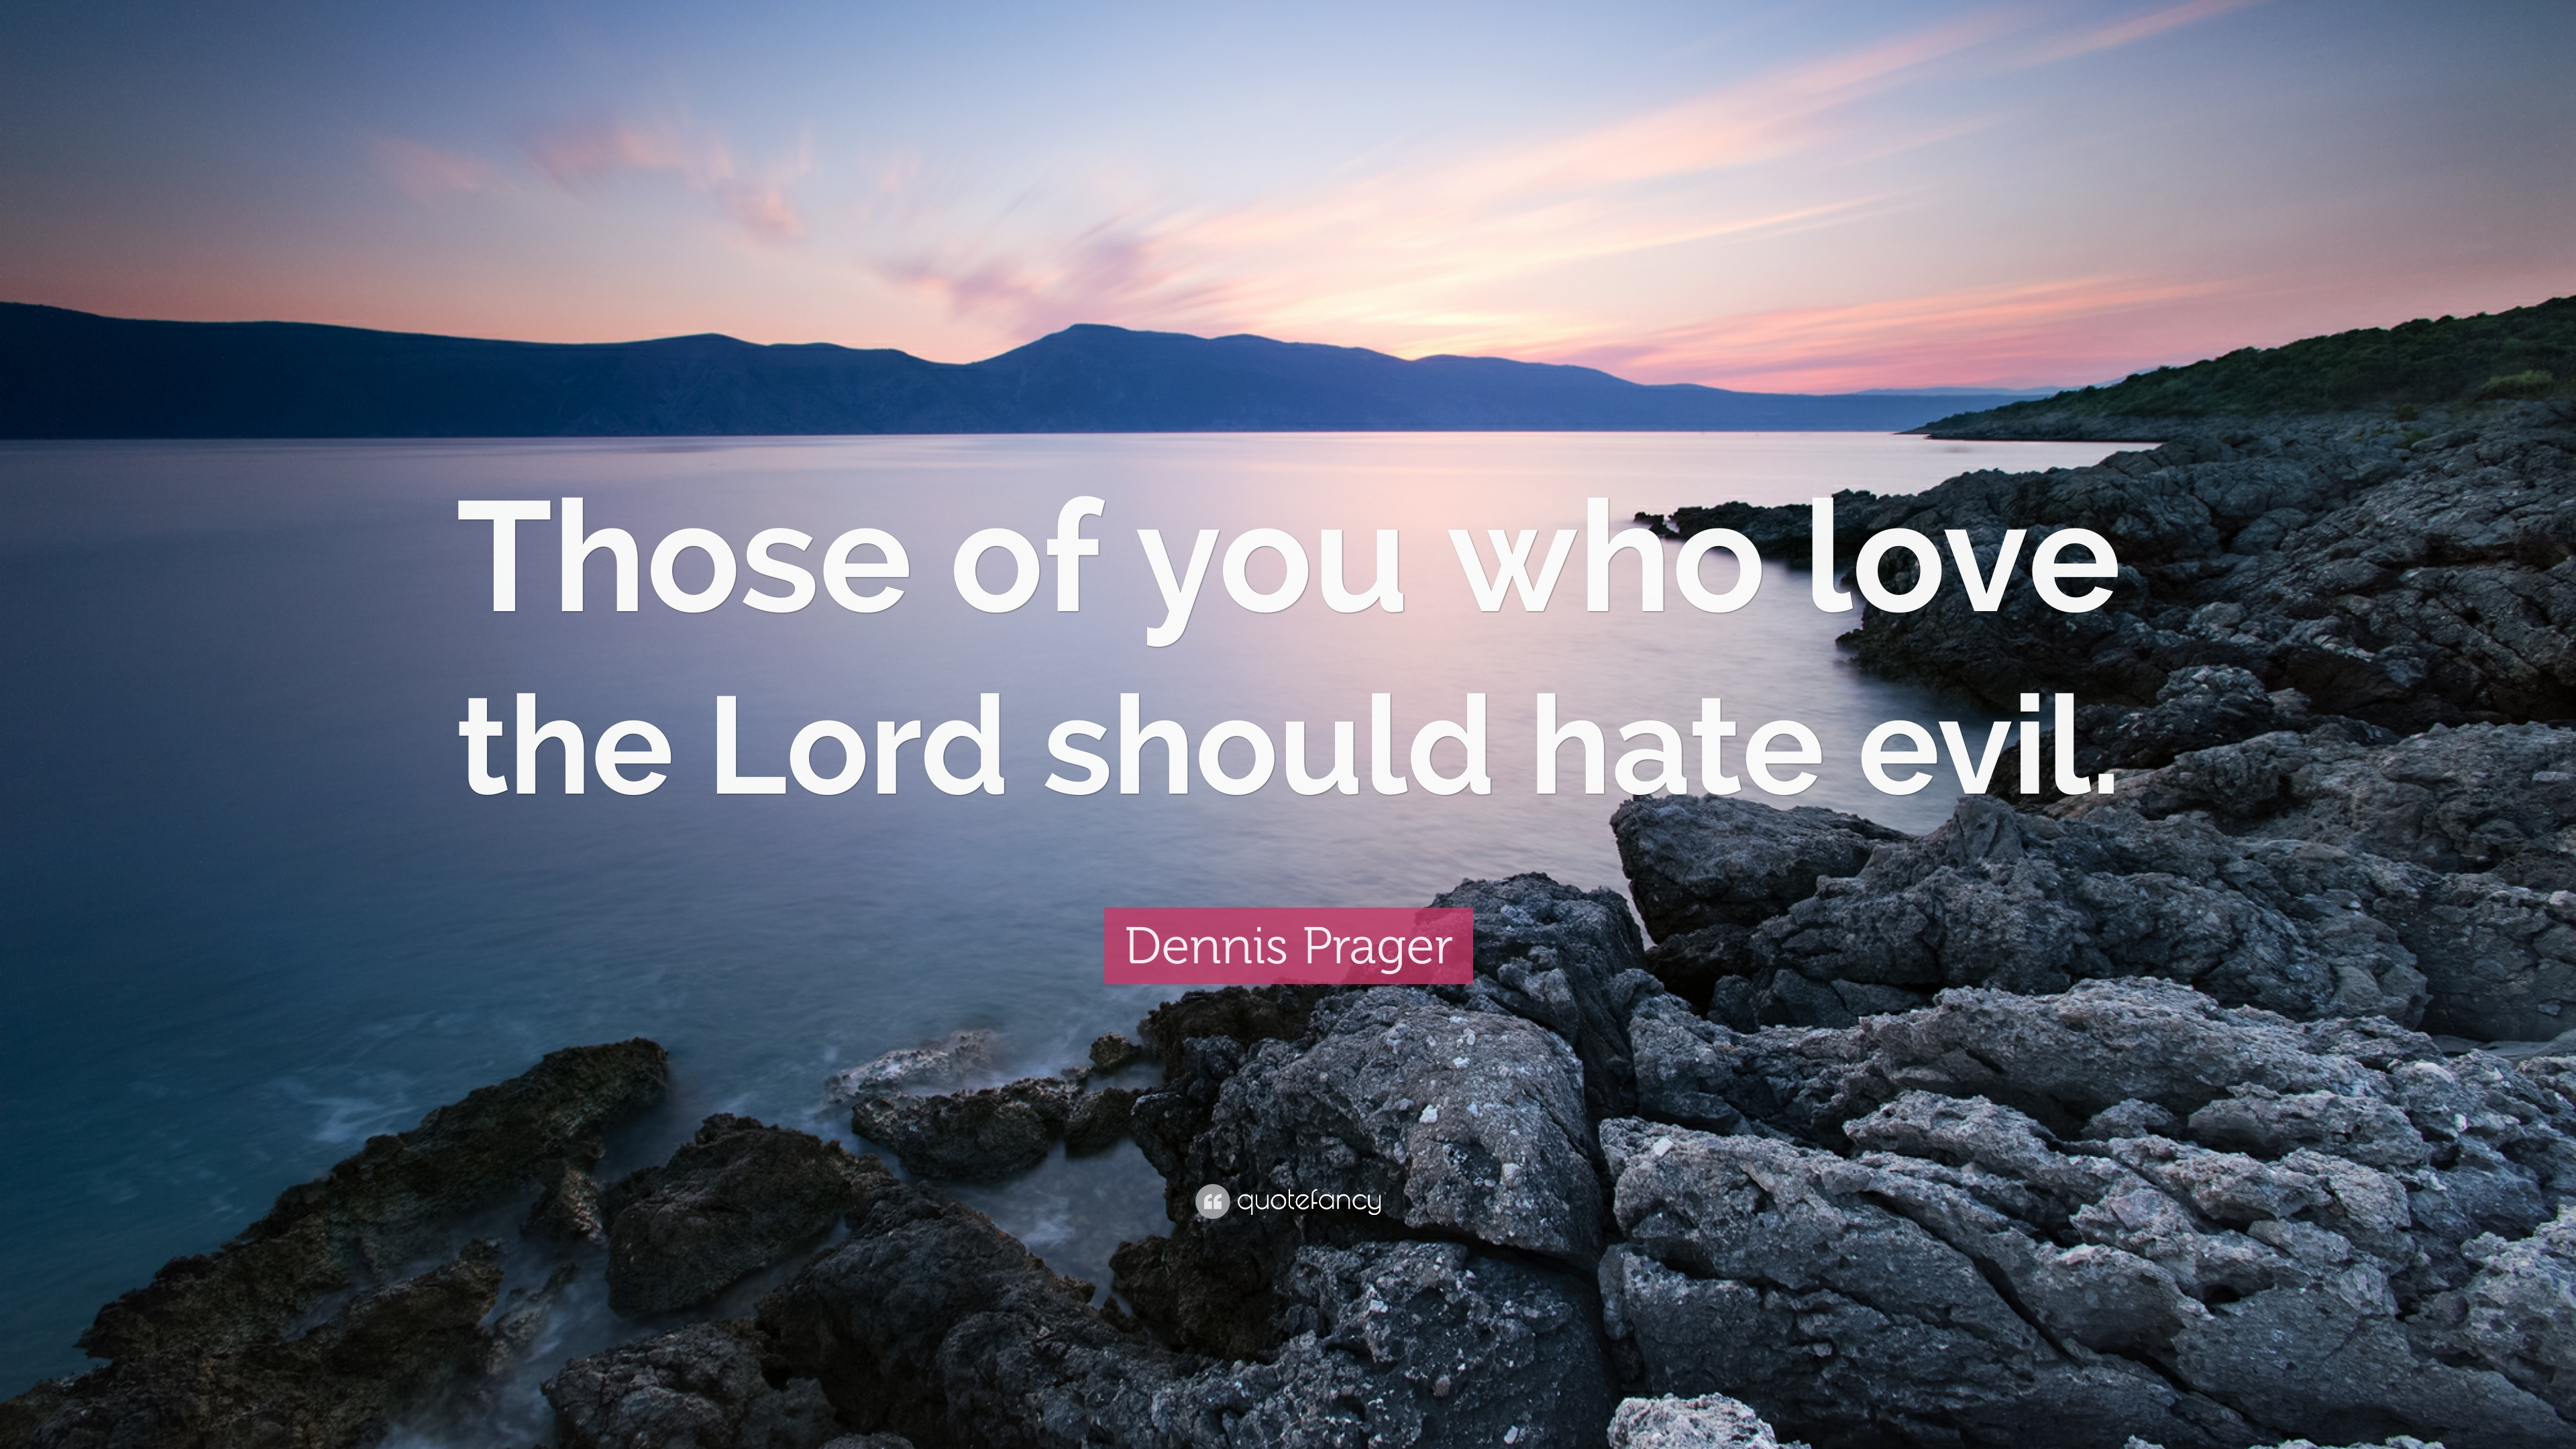 Dennis Prager Quote: U201cThose Of You Who Love The Lord Should Hate Evil.